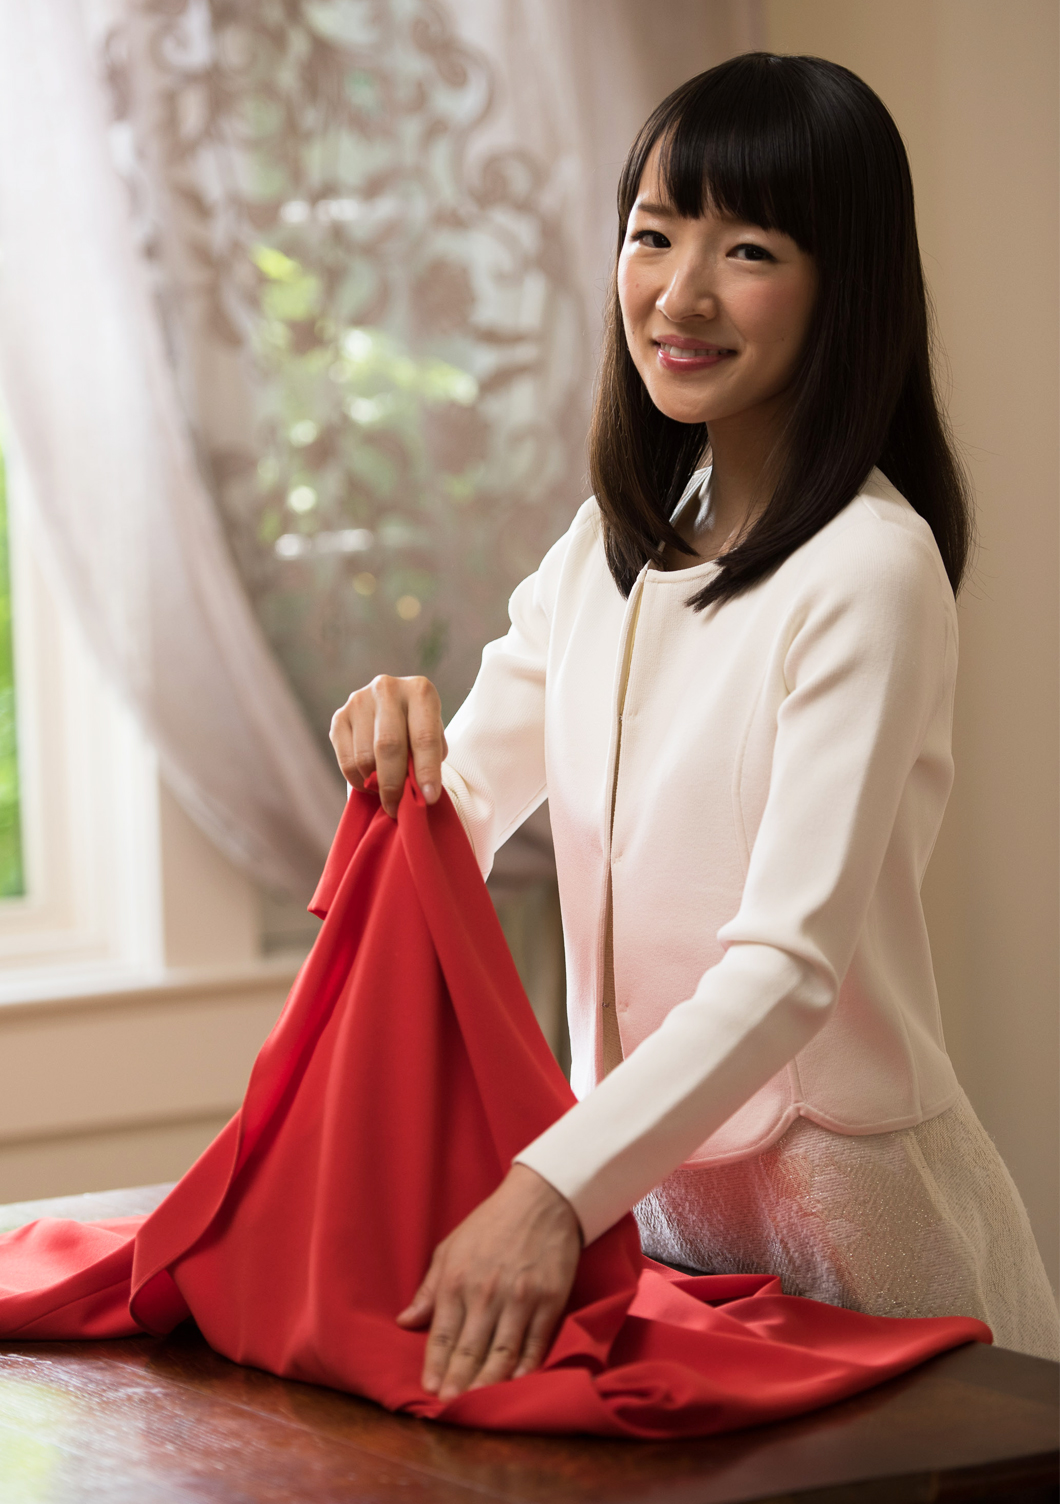 Marie Kondo is Embarrassed to Admit She Has This 1 Clutter Habit